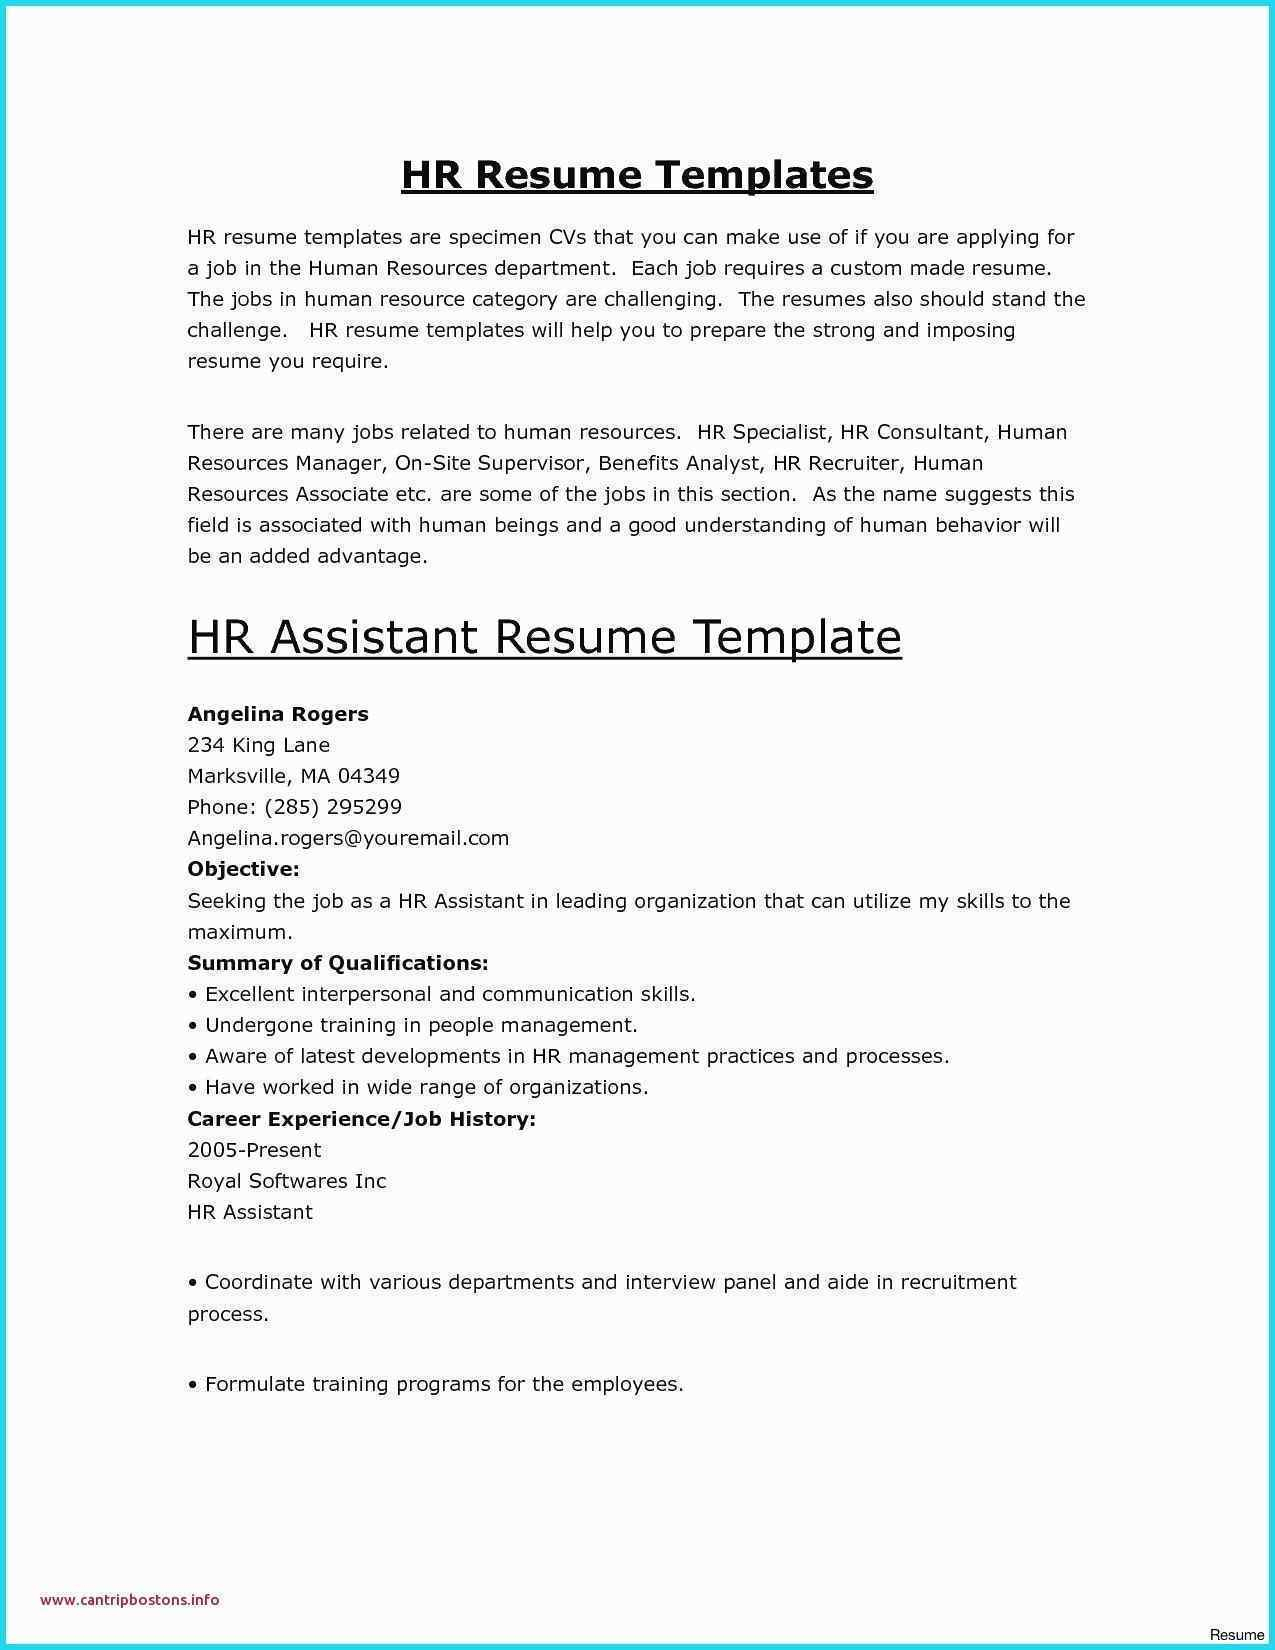 Performing Arts Resume Template - Performing Arts Resume Template Lovely Performing Arts Resume